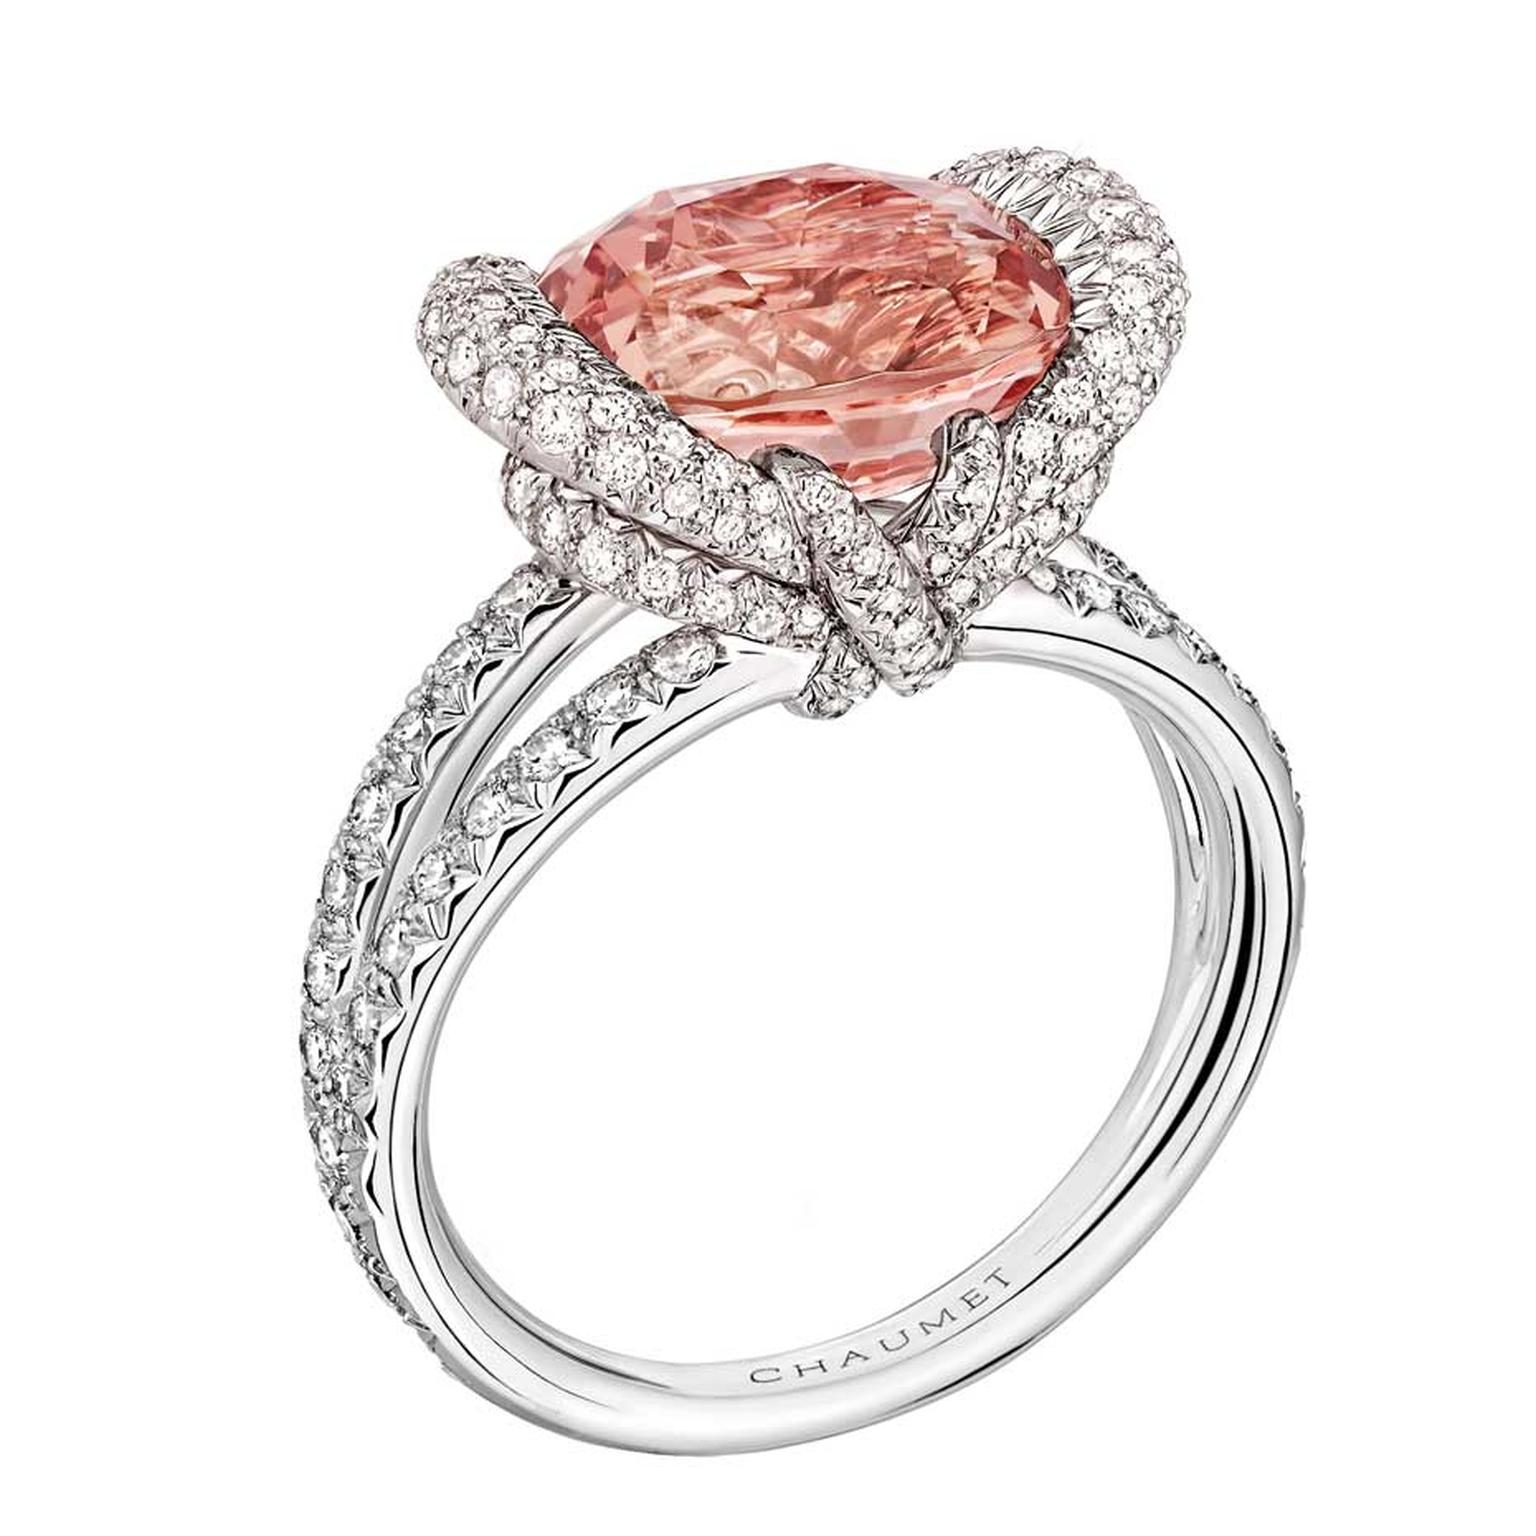 engagement courtesy glamour rings main halo pave with modern diamonds story weddings new